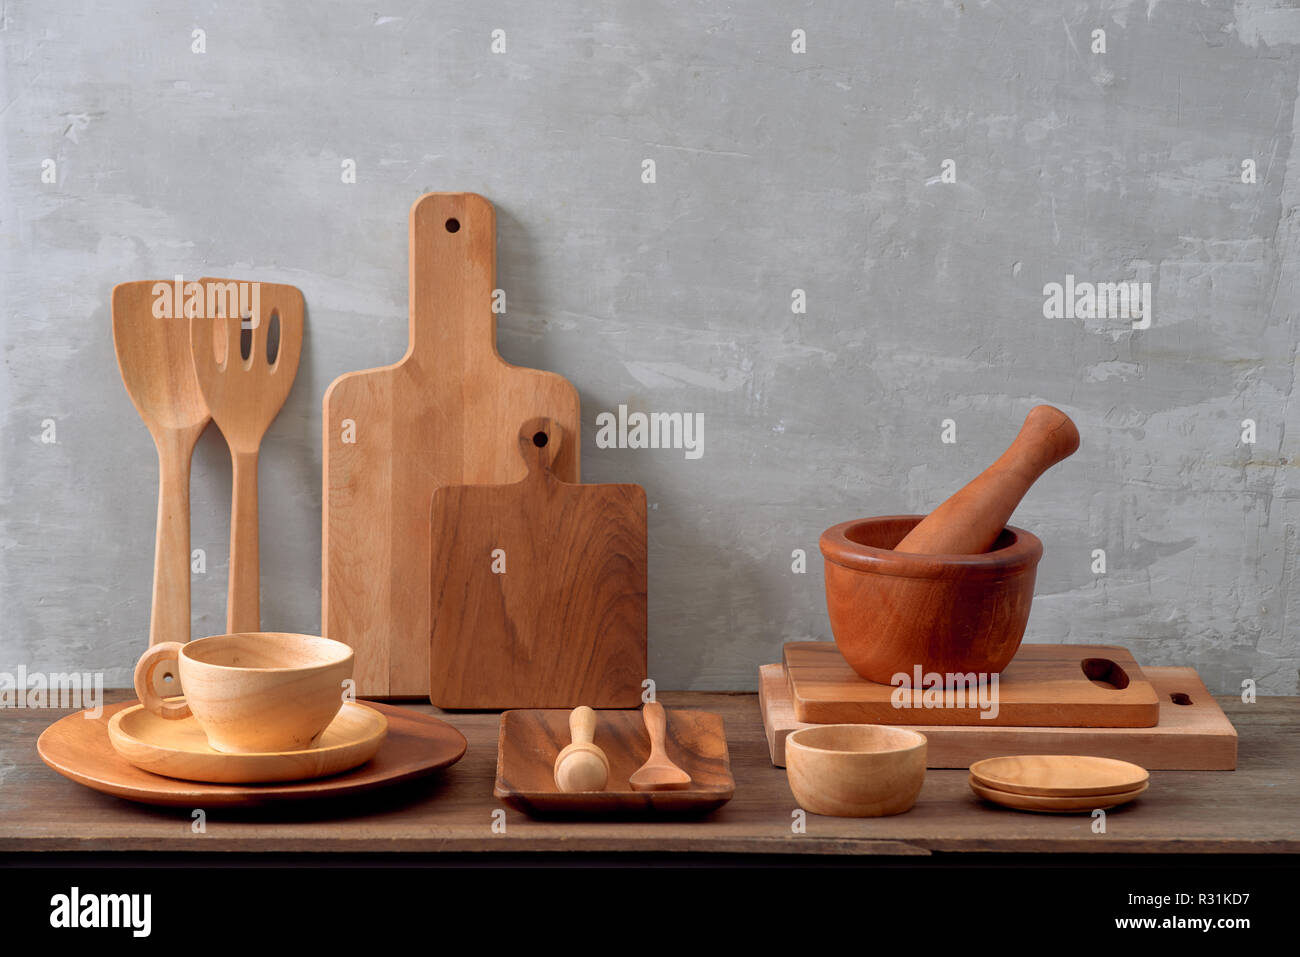 Kitchen Tools Olive Cutting Board On A Kitchen Shelf Against A White Brick Wall Selective Focus Stock Photo Alamy